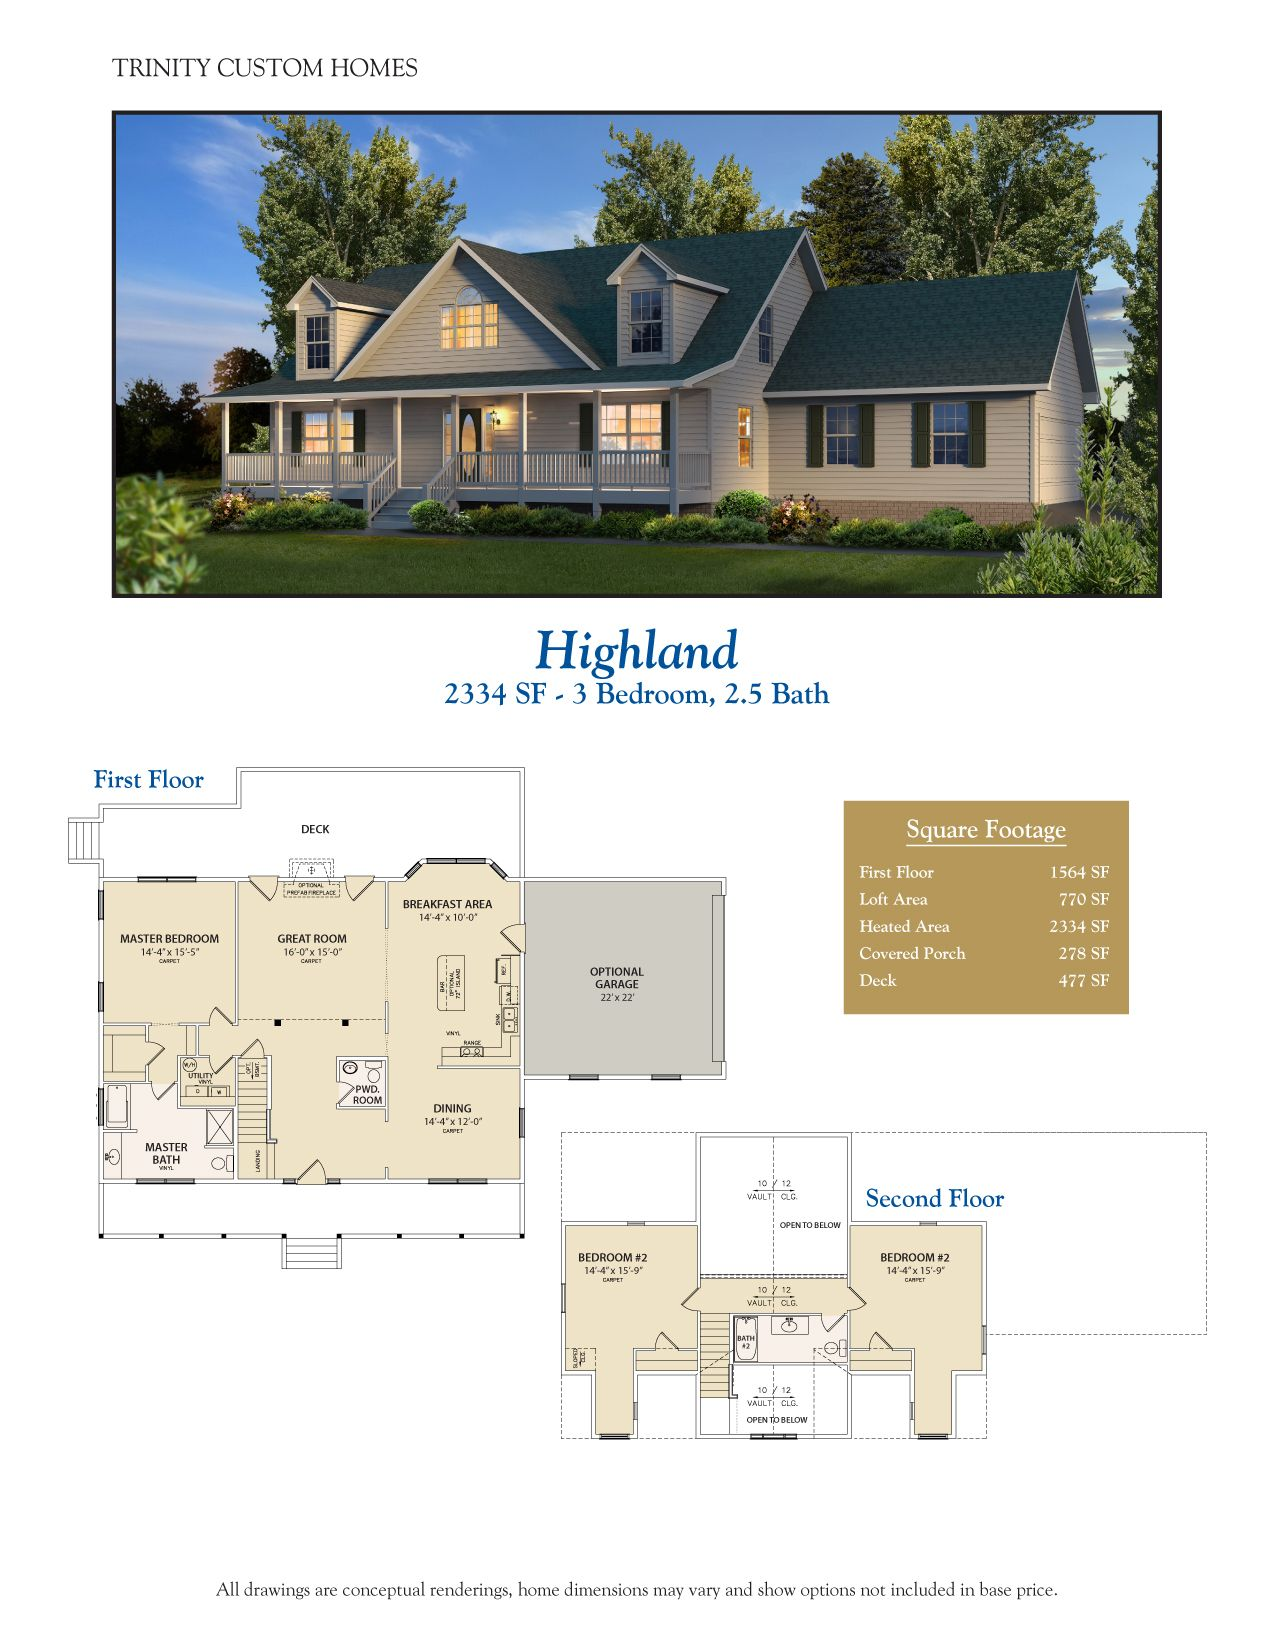 Take a look at all of Trinity Custom Homes Georgia floor plans here ...